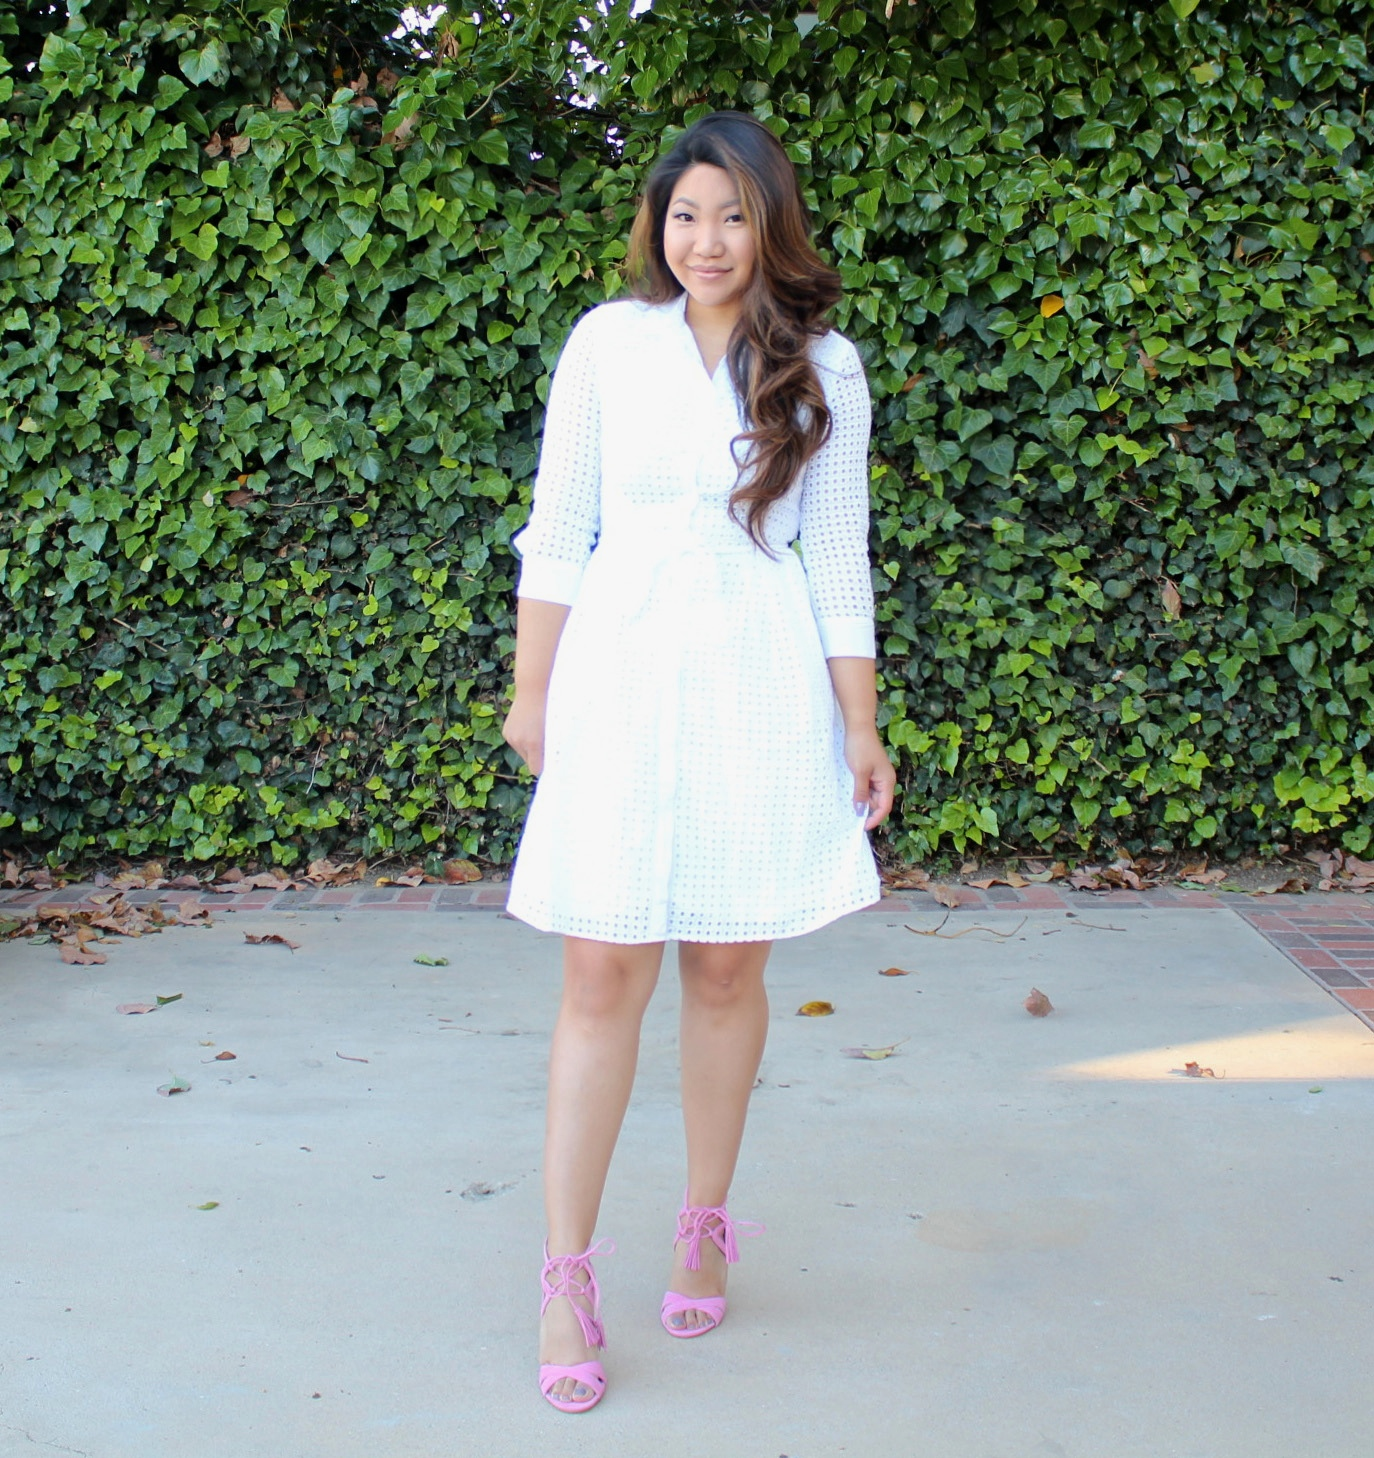 4d88d1afda8185 Tia Wong - Who What Wear Collection at Target. Tia Wong - Pink Sam Edelman  Heels ...